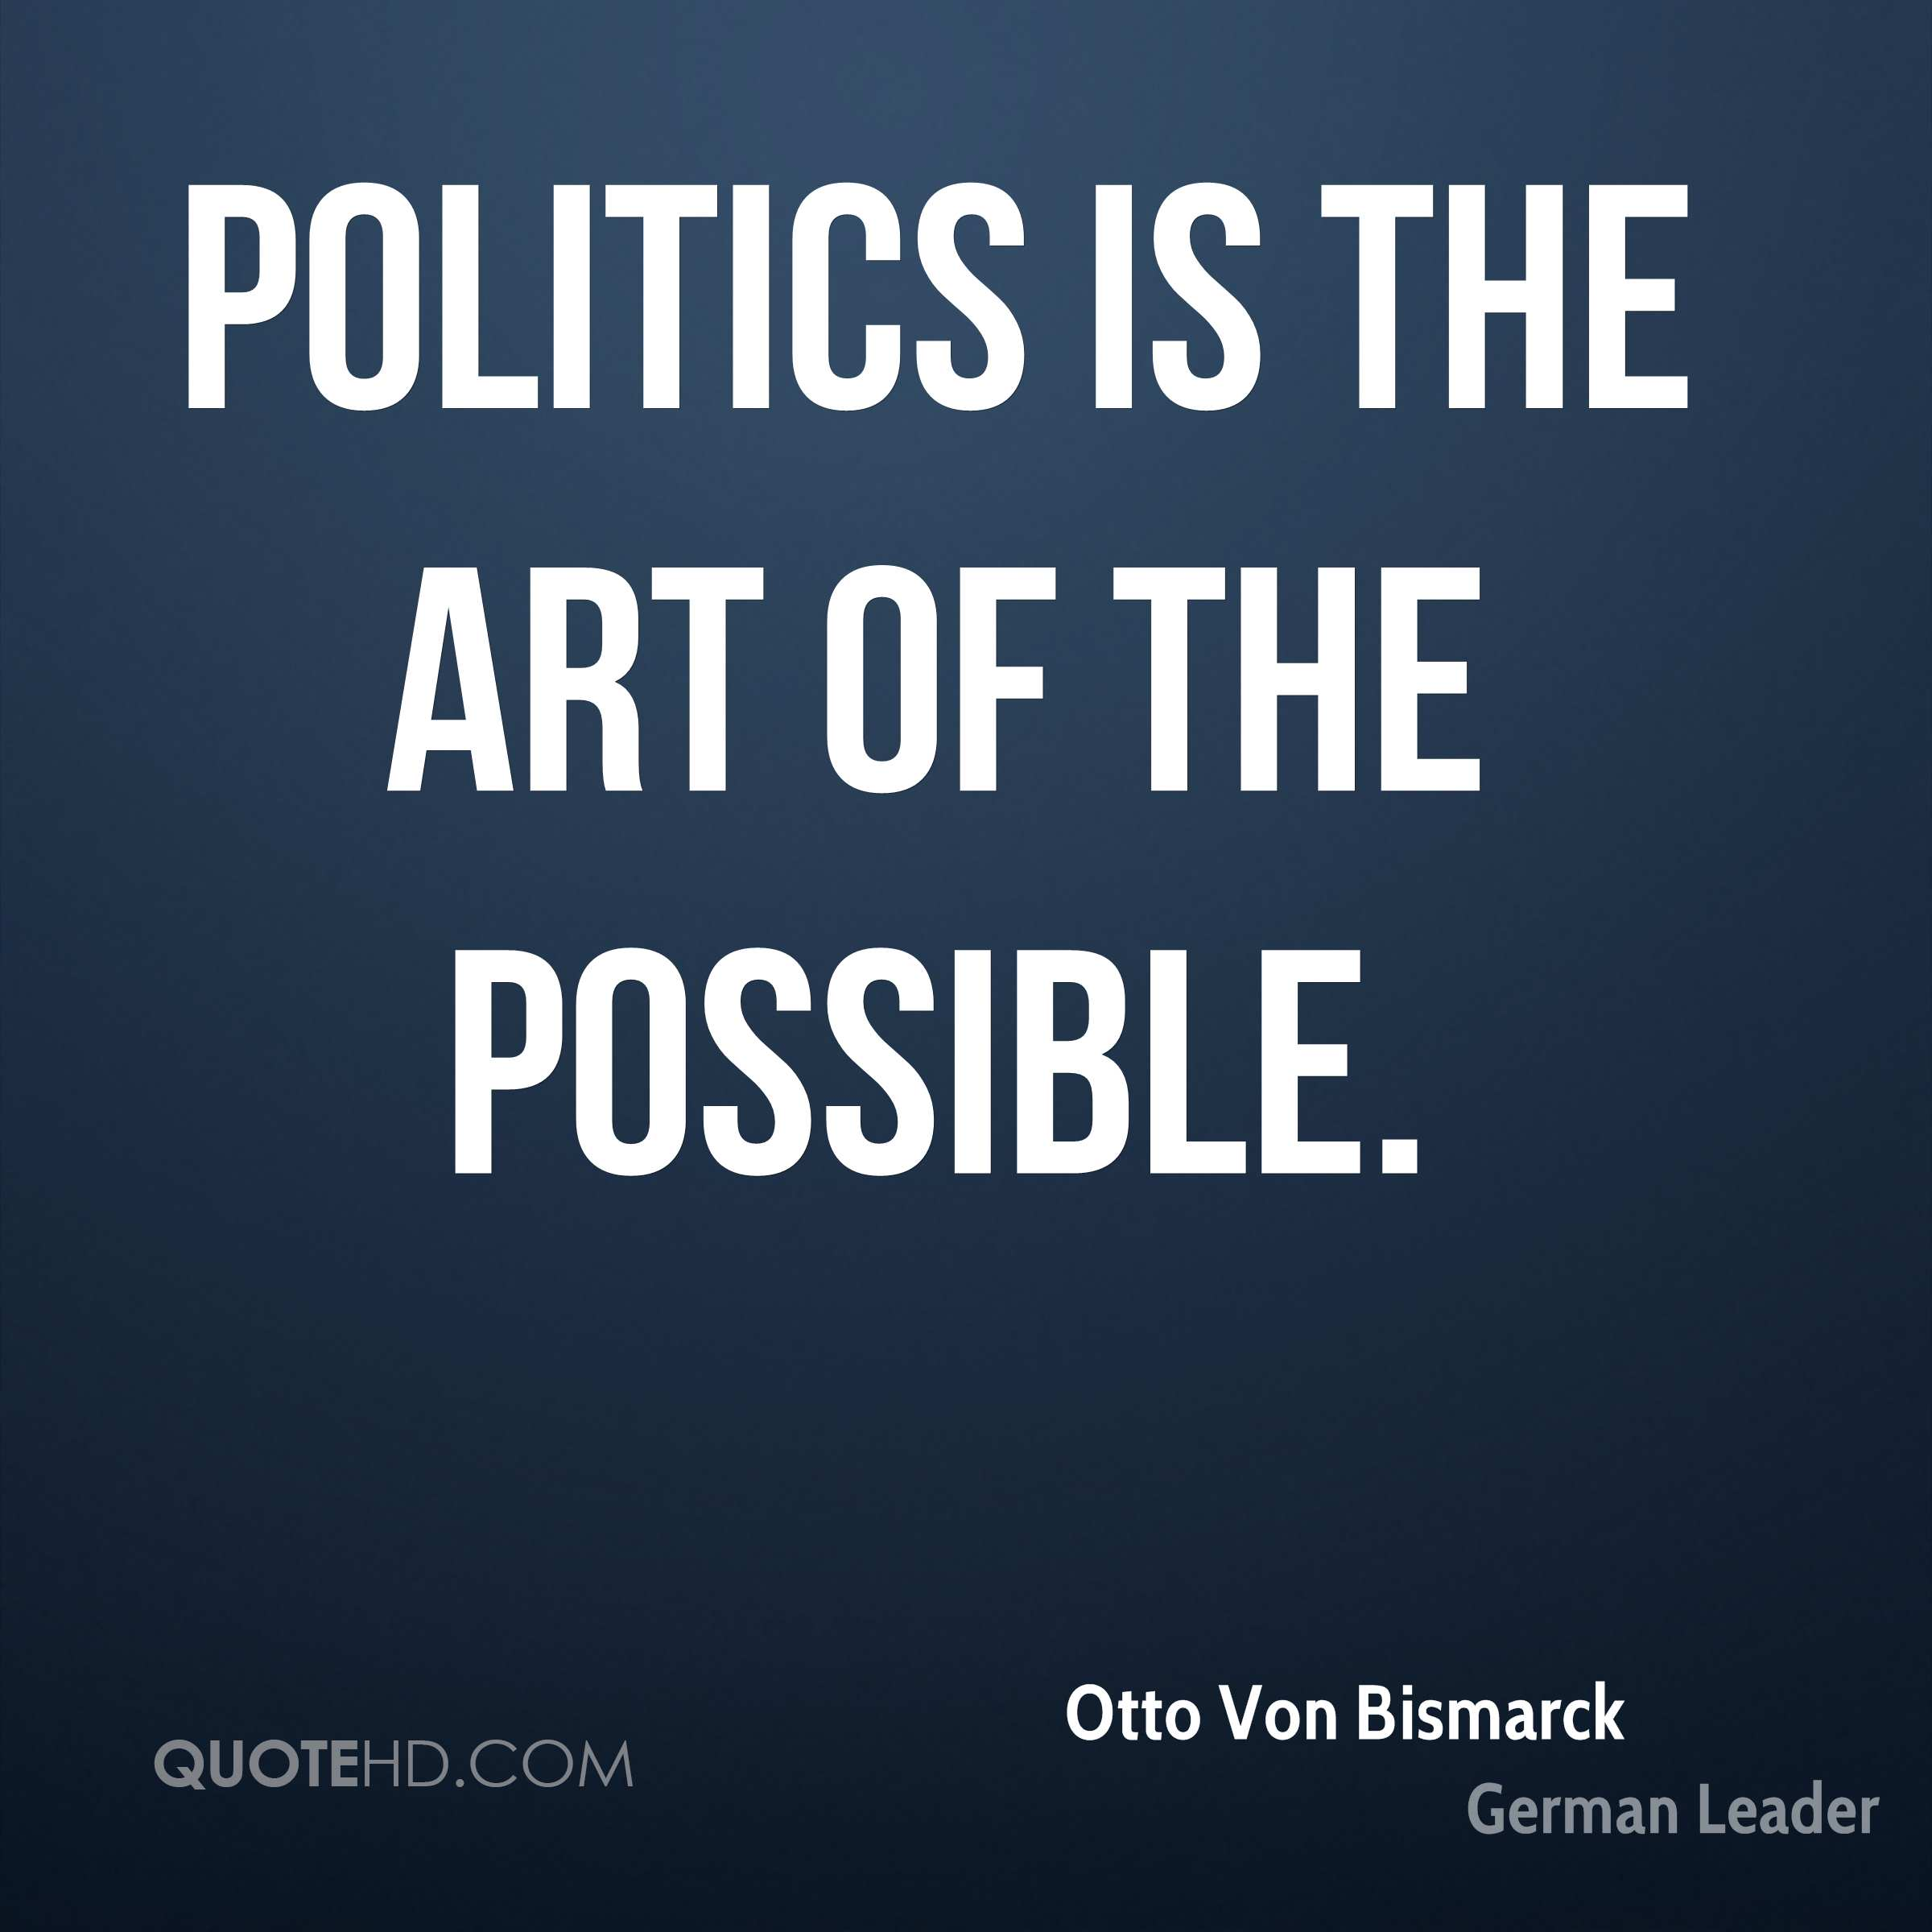 Politics is the art of the possible.